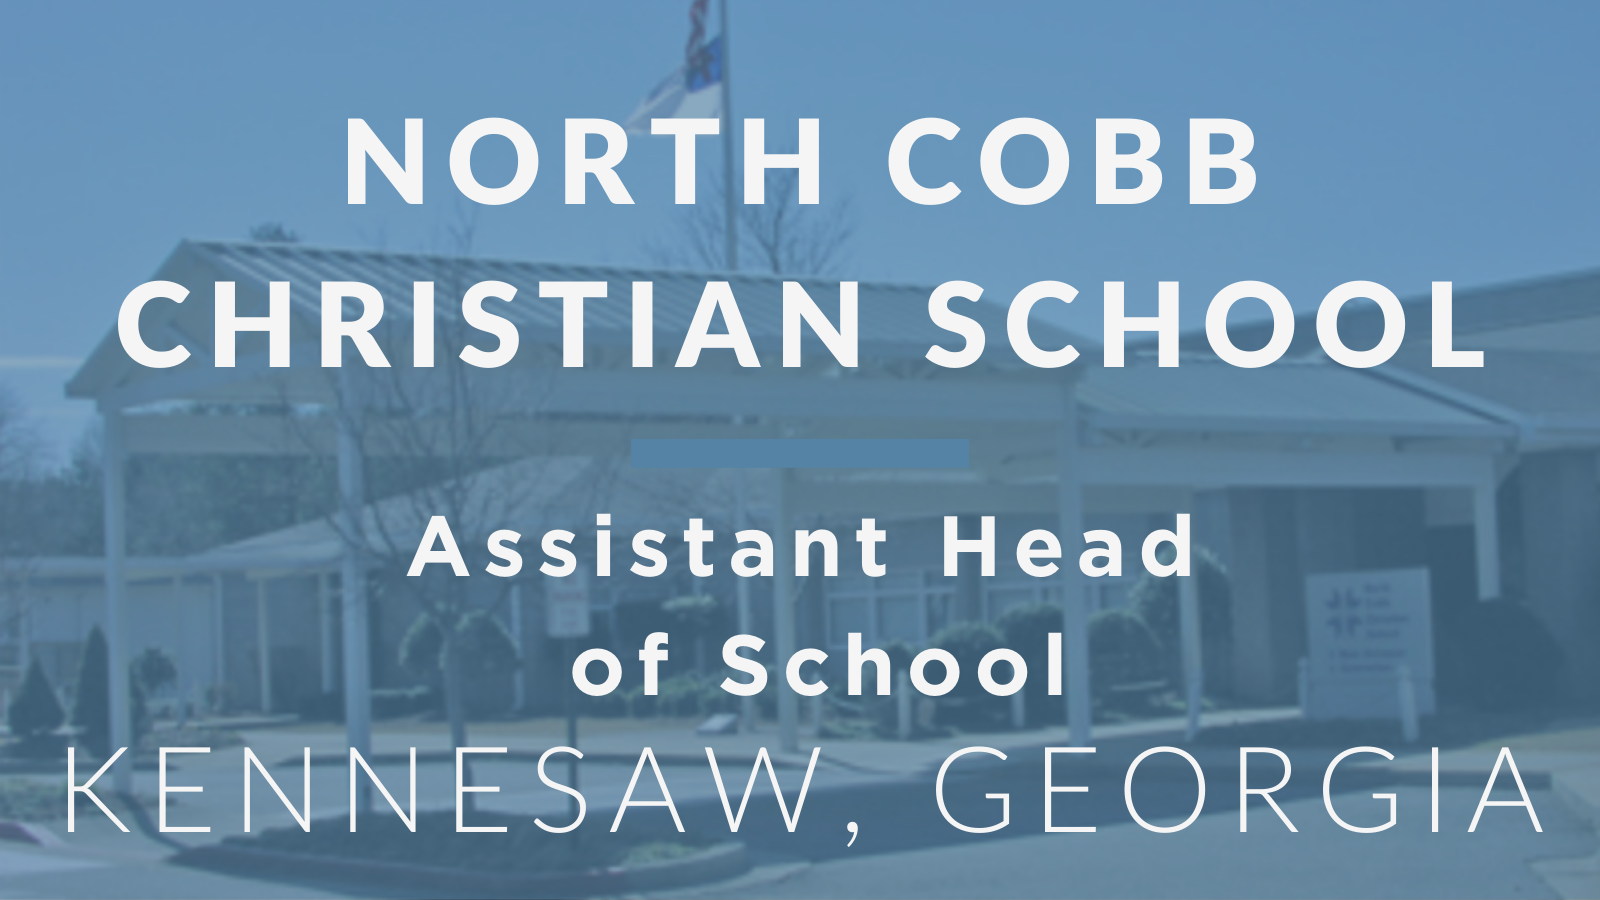 Recent Jobs - North Cobb Christian School